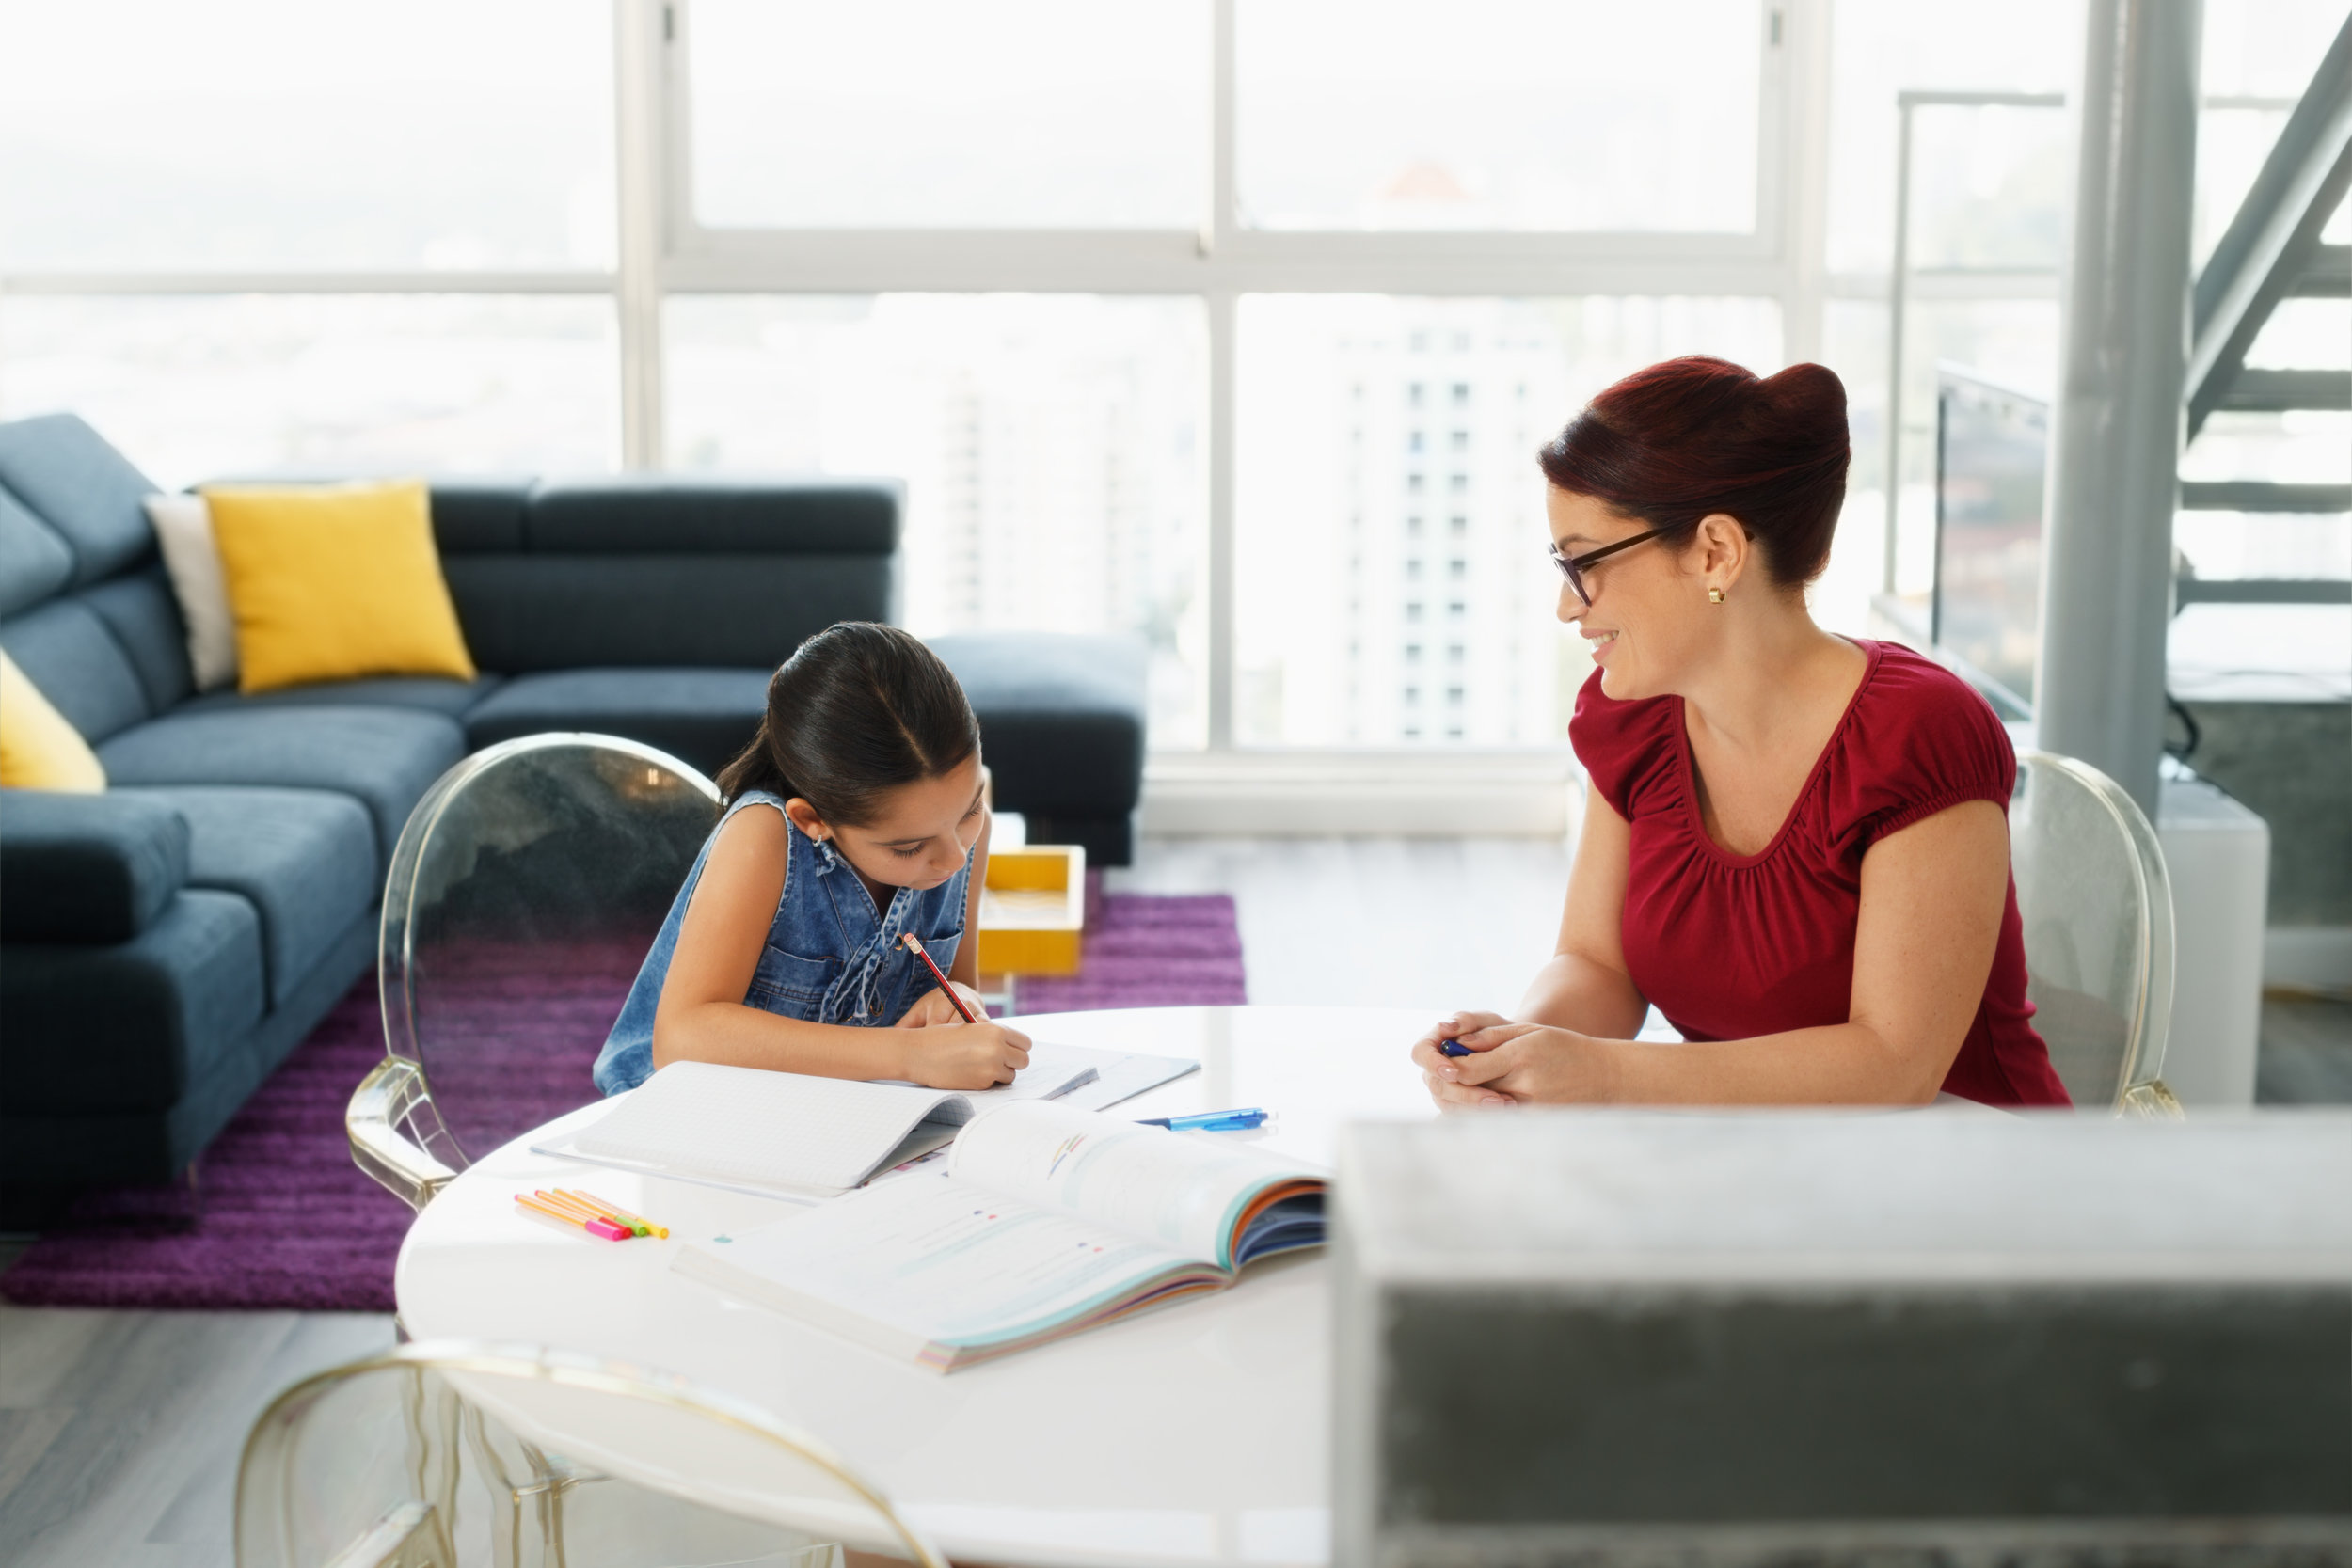 education-with-mom-helping-daughter-doing-school-PEH56DY.jpg